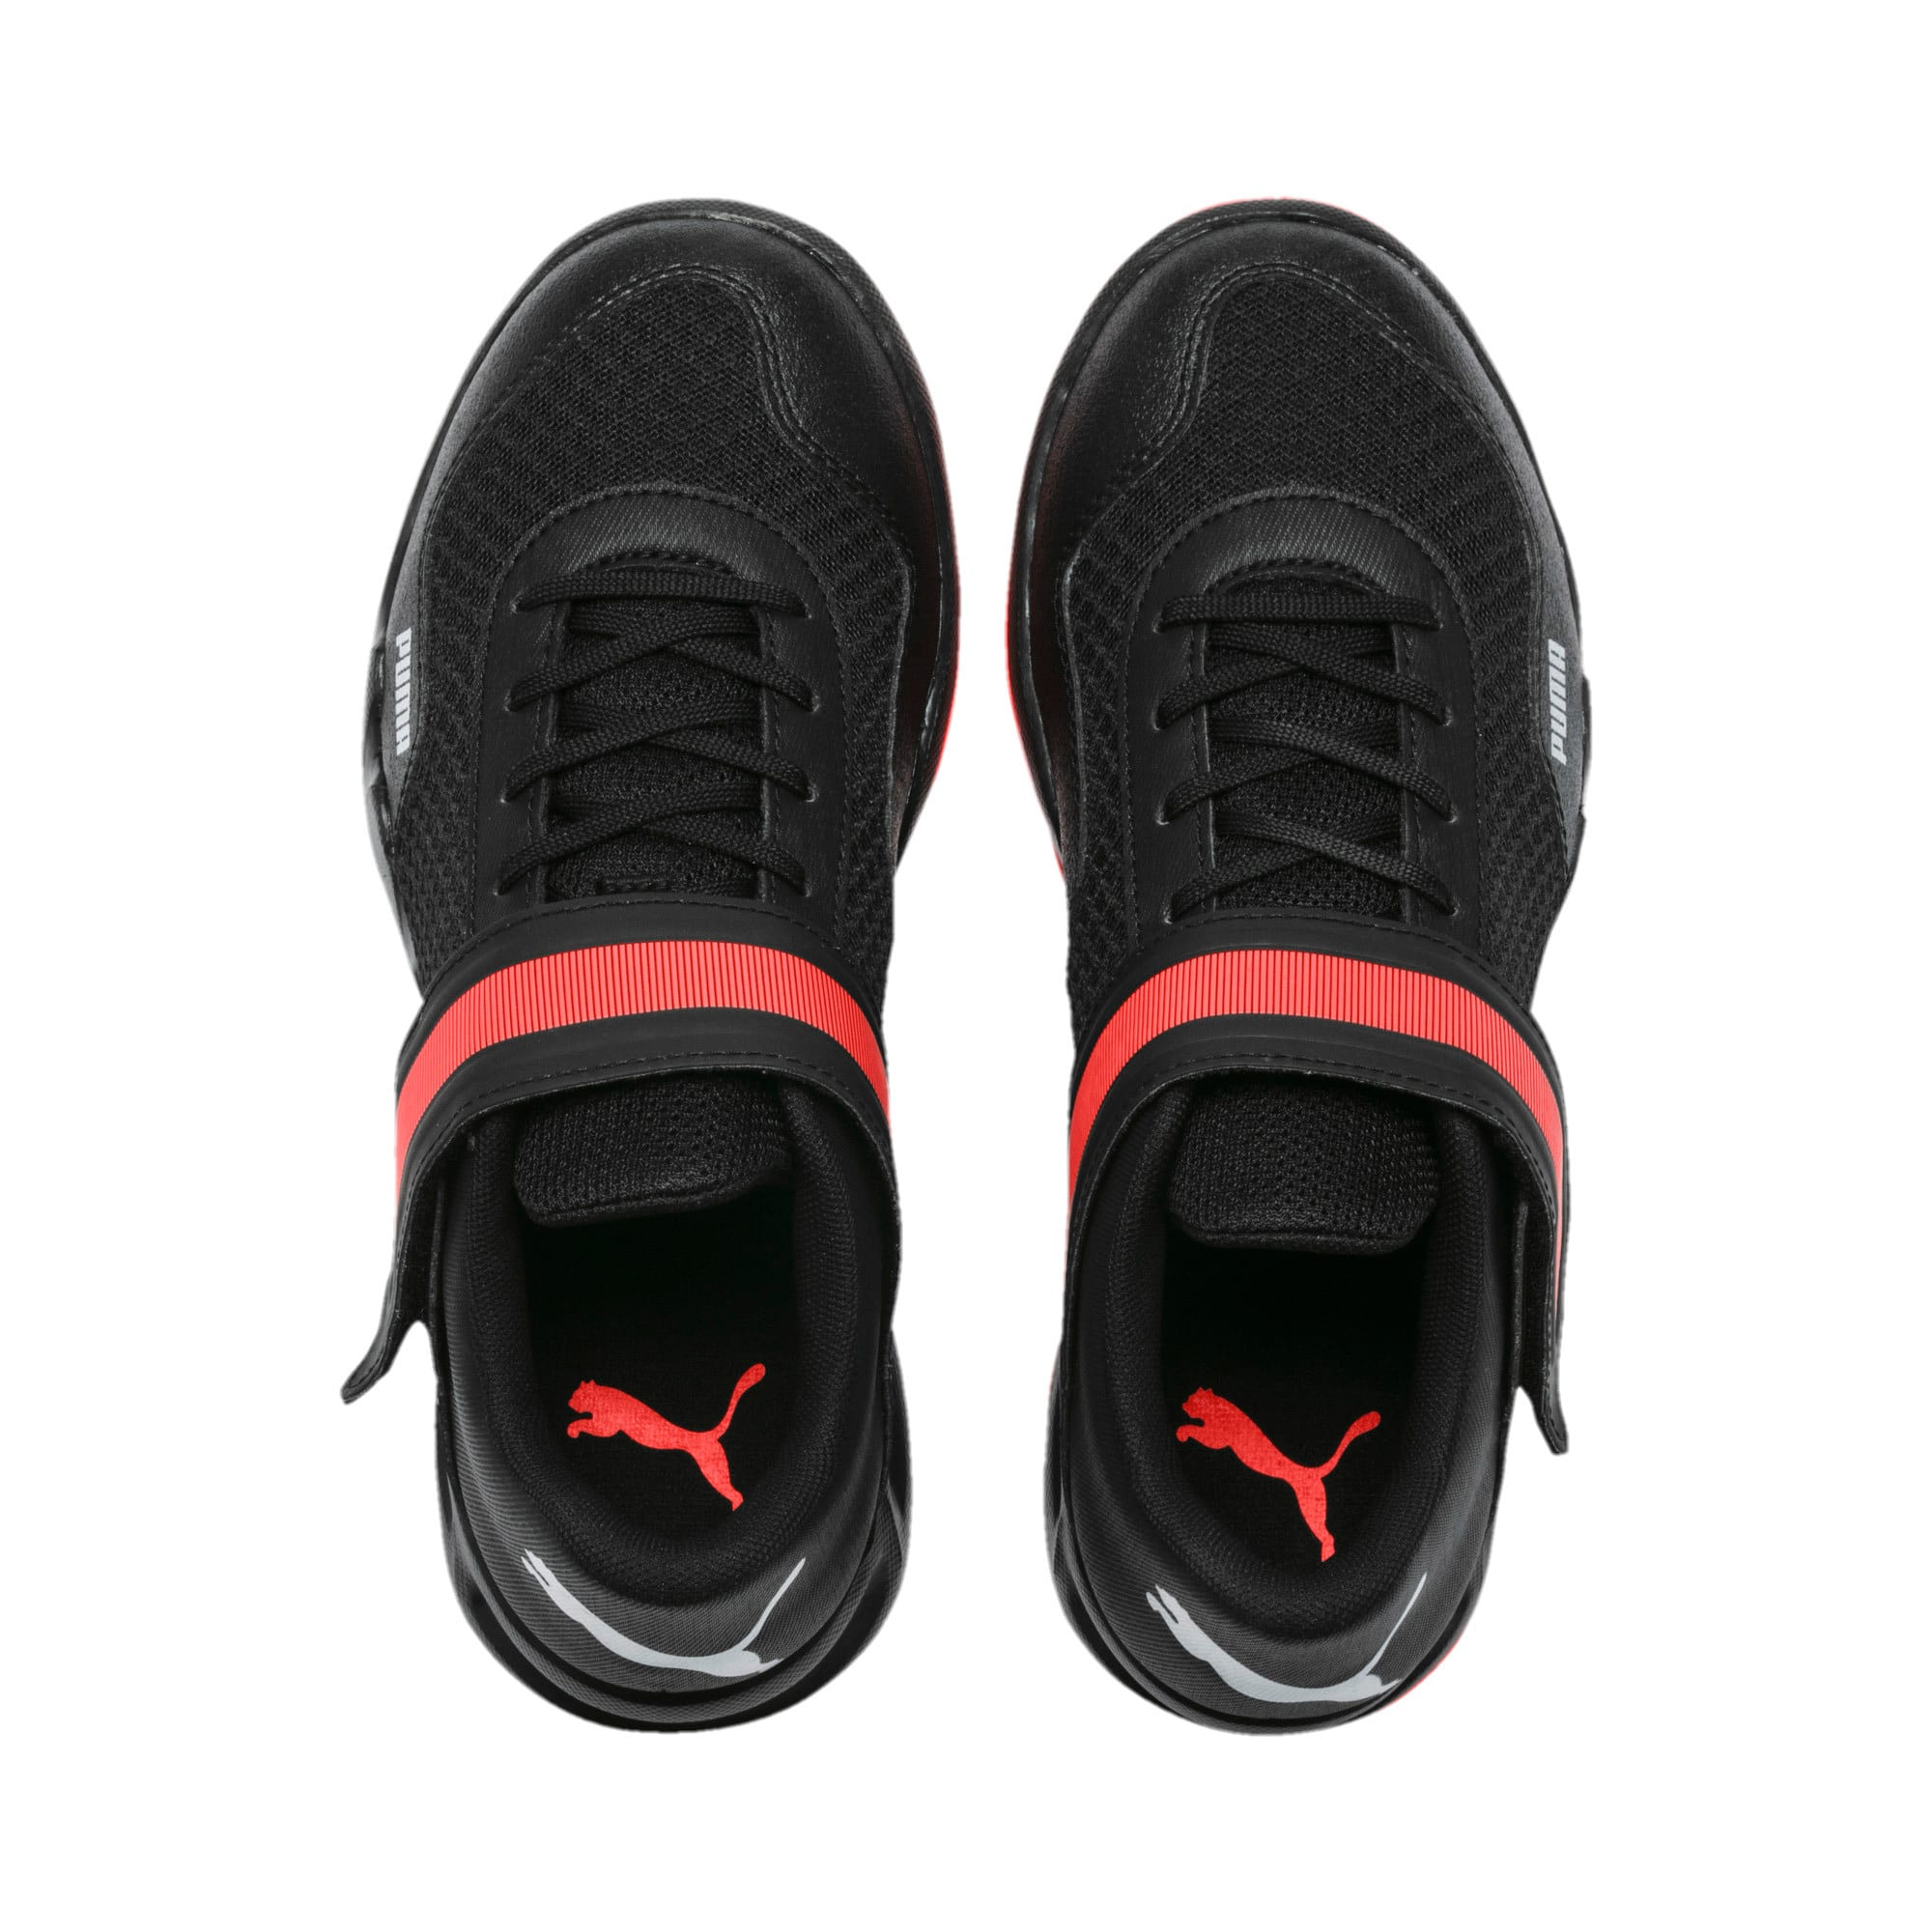 Thumbnail 6 of Rise XT 4 Youth Sneaker, Puma Black-Silver-Nrgy Red, medium